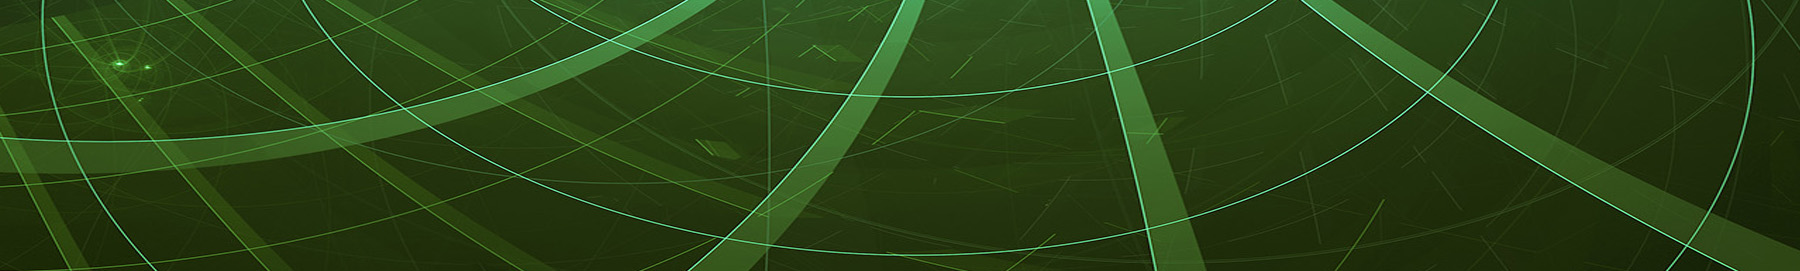 Abstract digitally generated green wavy background